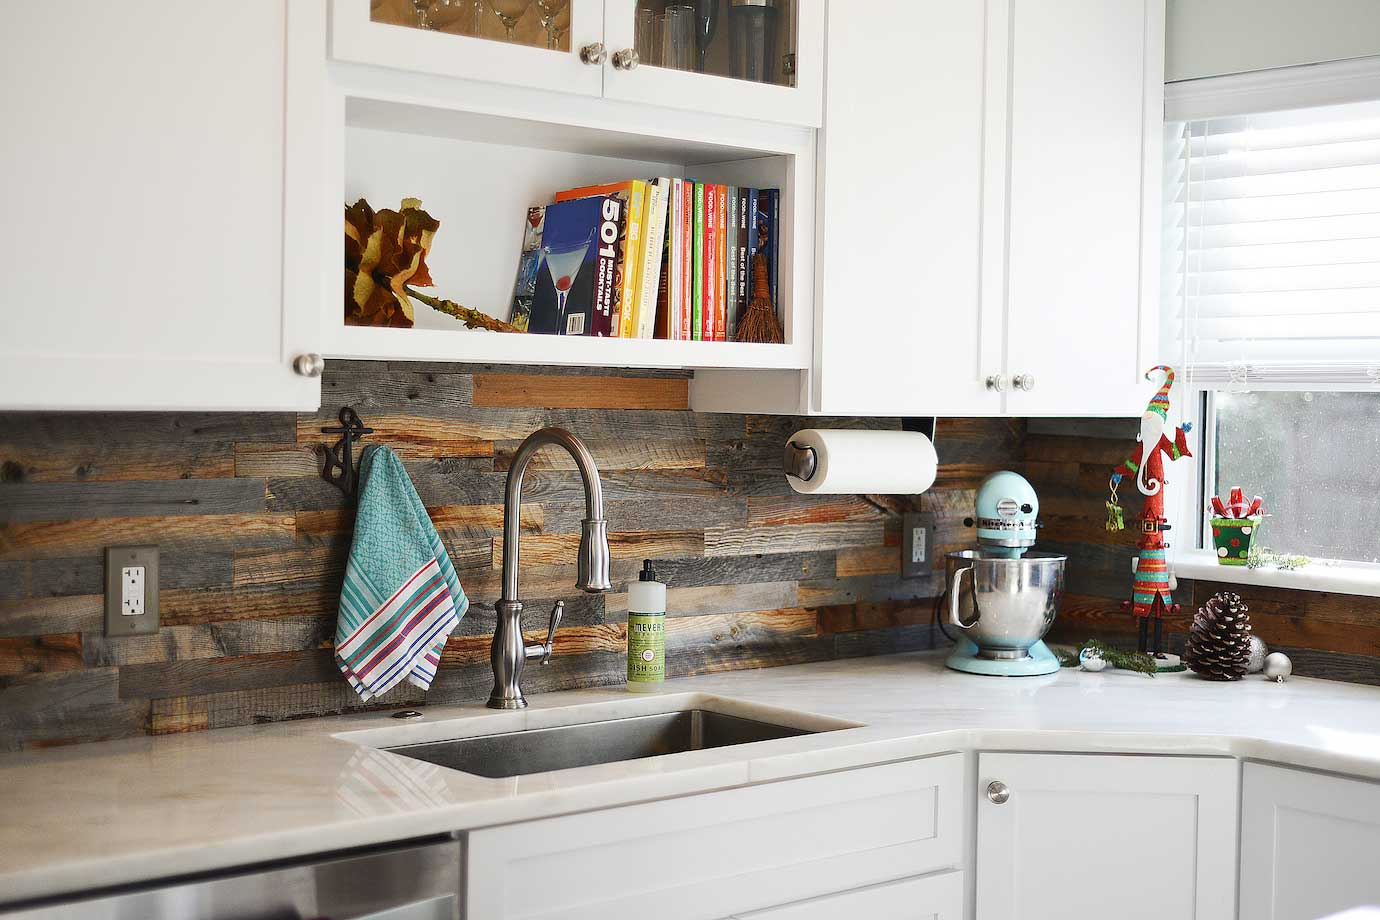 6 Outstanding Kitchen Backsplash Ideas That Make You Feel Like A